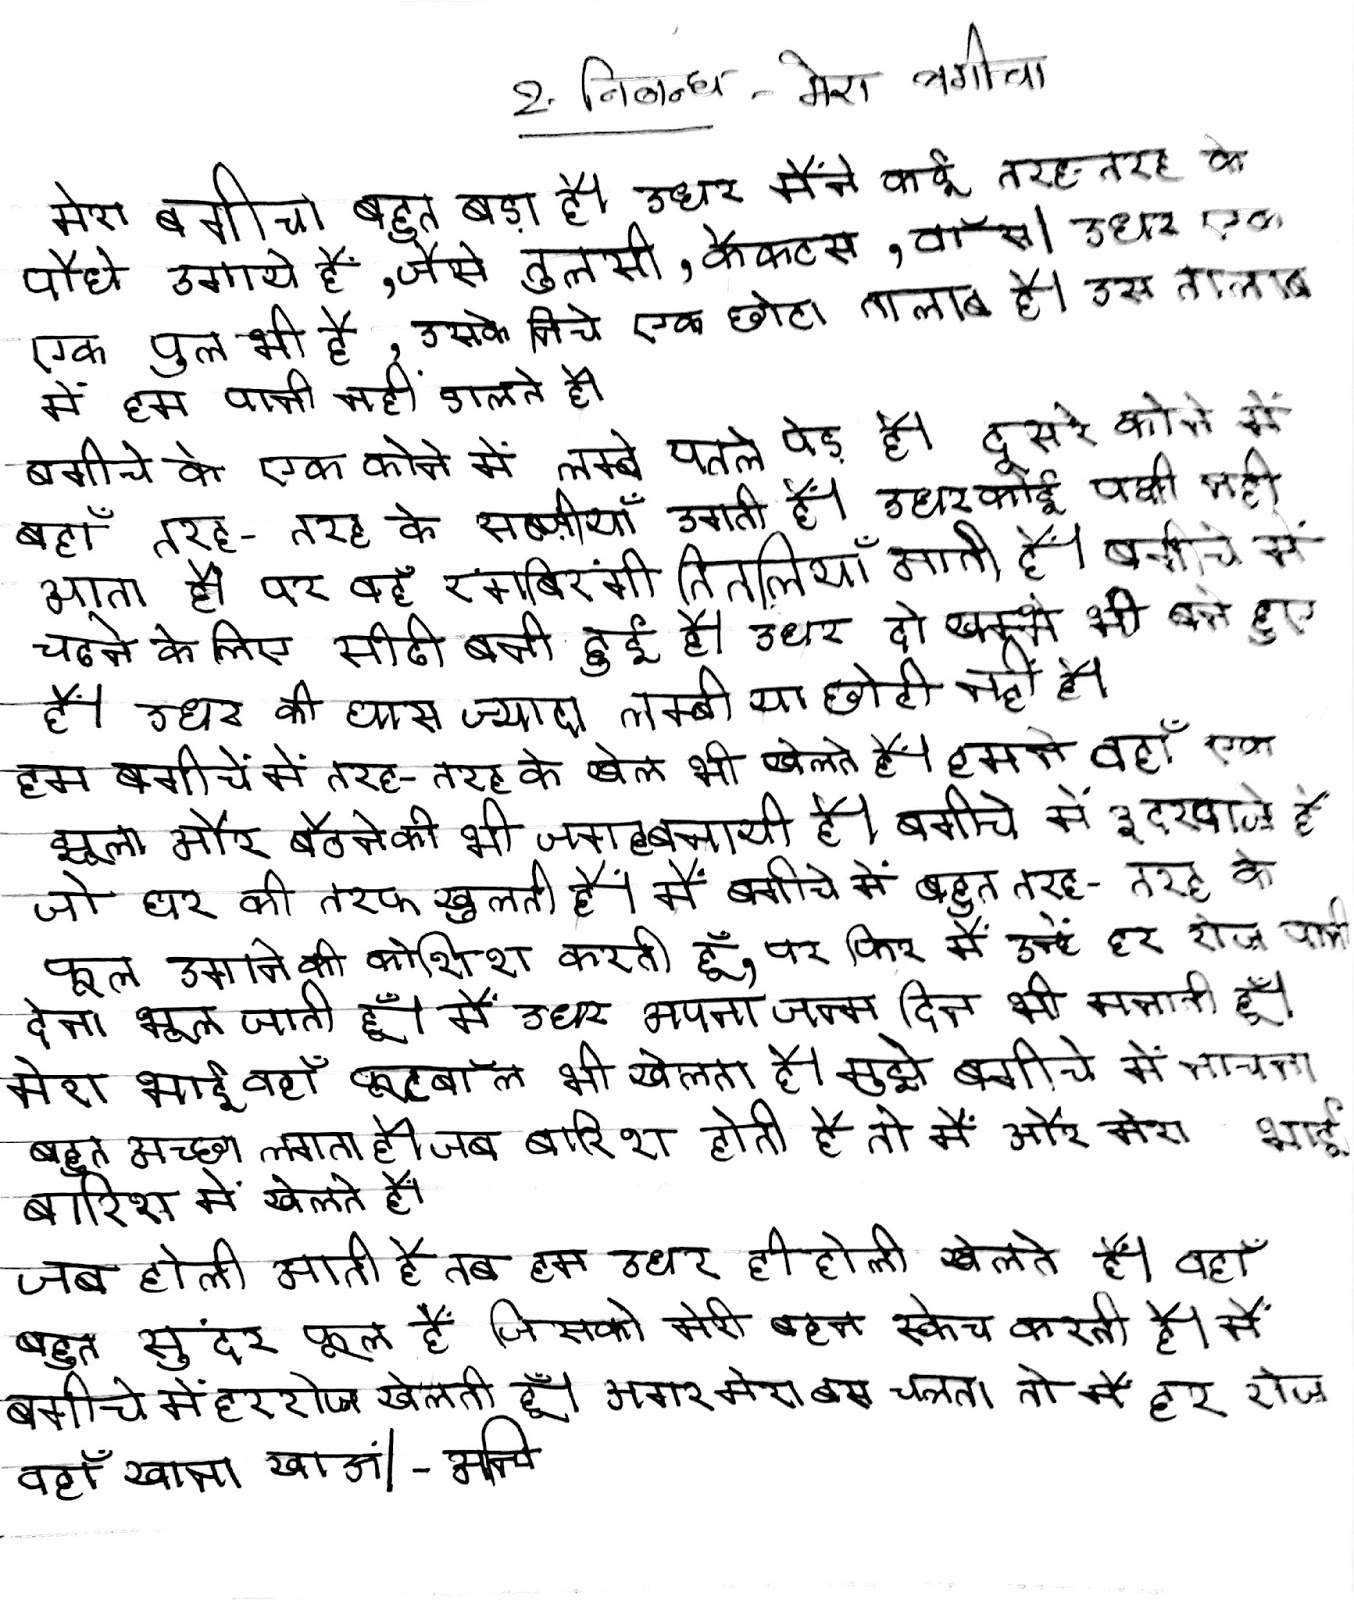 015 Essay On Garden Example Hindi Homework Writing Service Gard Stunning Gardening By Henk Gerritsen In Sanskrit Language Full